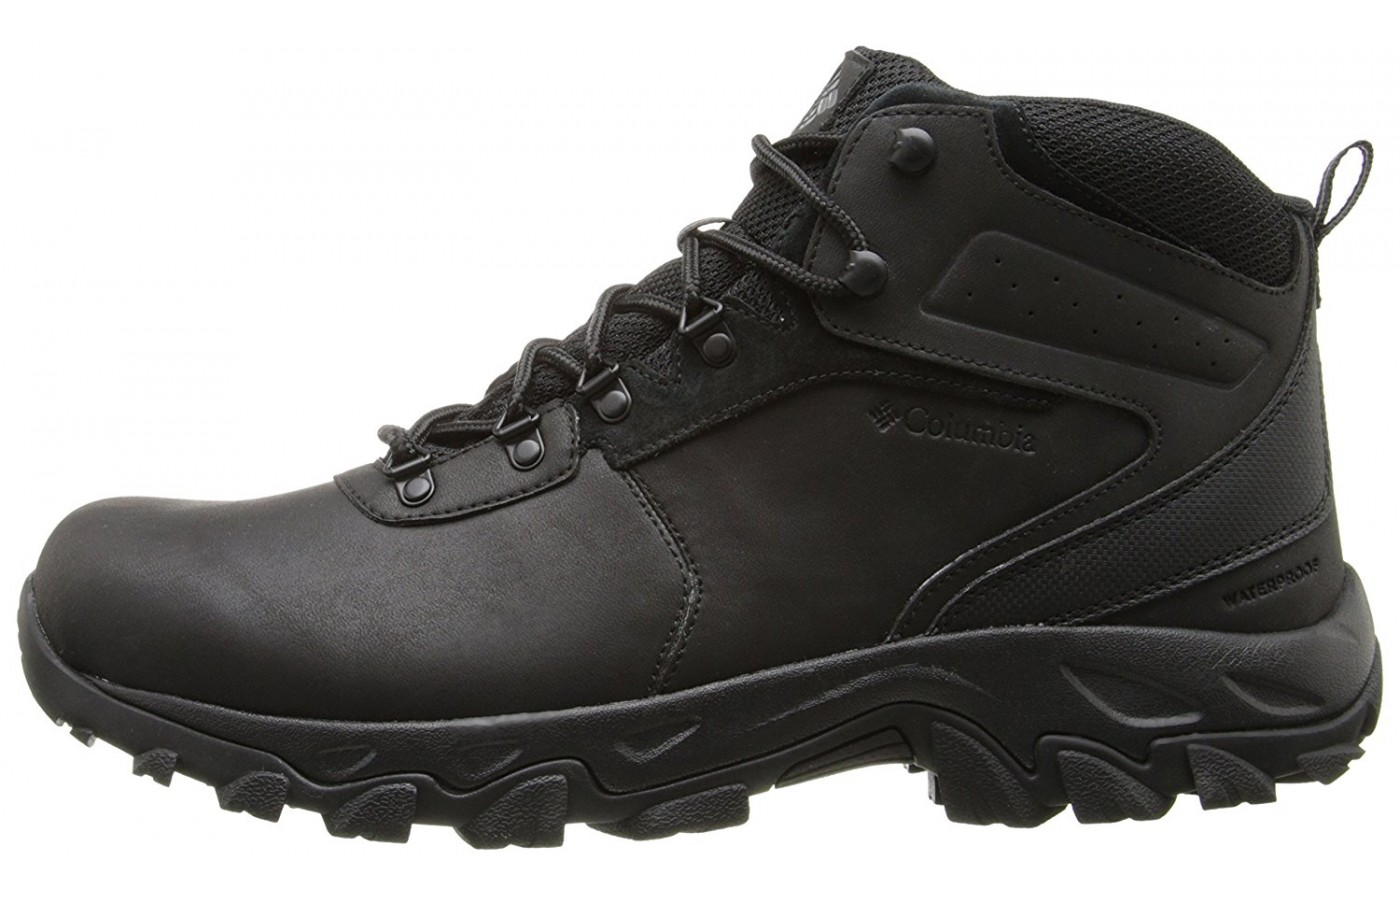 A side view of the Columbia Newton Ridge Plus II hiking boot